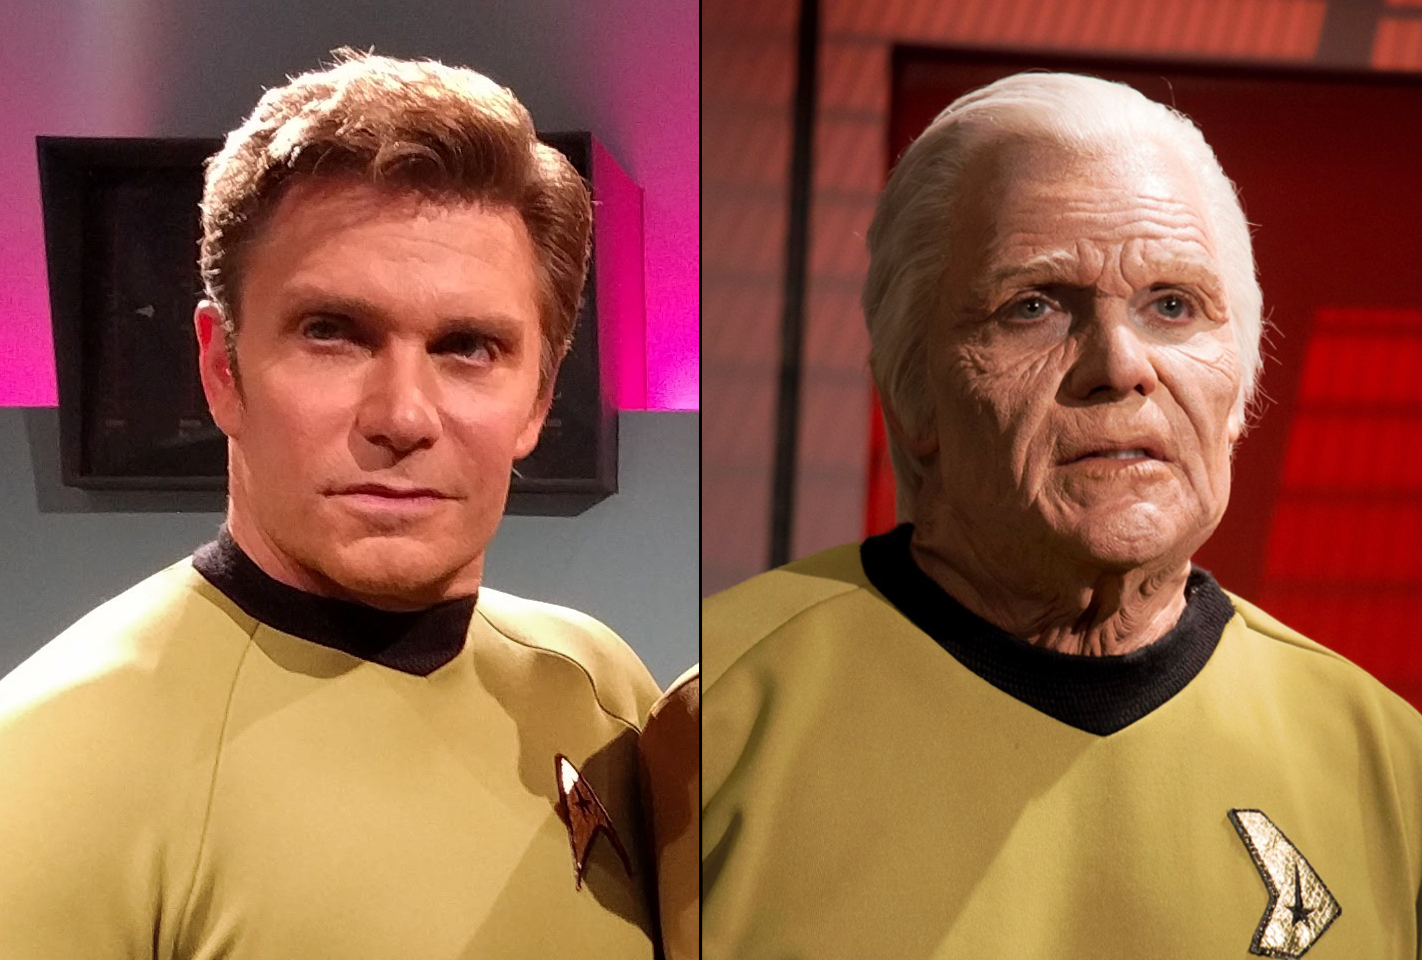 Vic Mignogna as Young and Old Captain Kirk Star Trek Ep8 Still Treads the Shadow - Makeup by ImpaQt FX